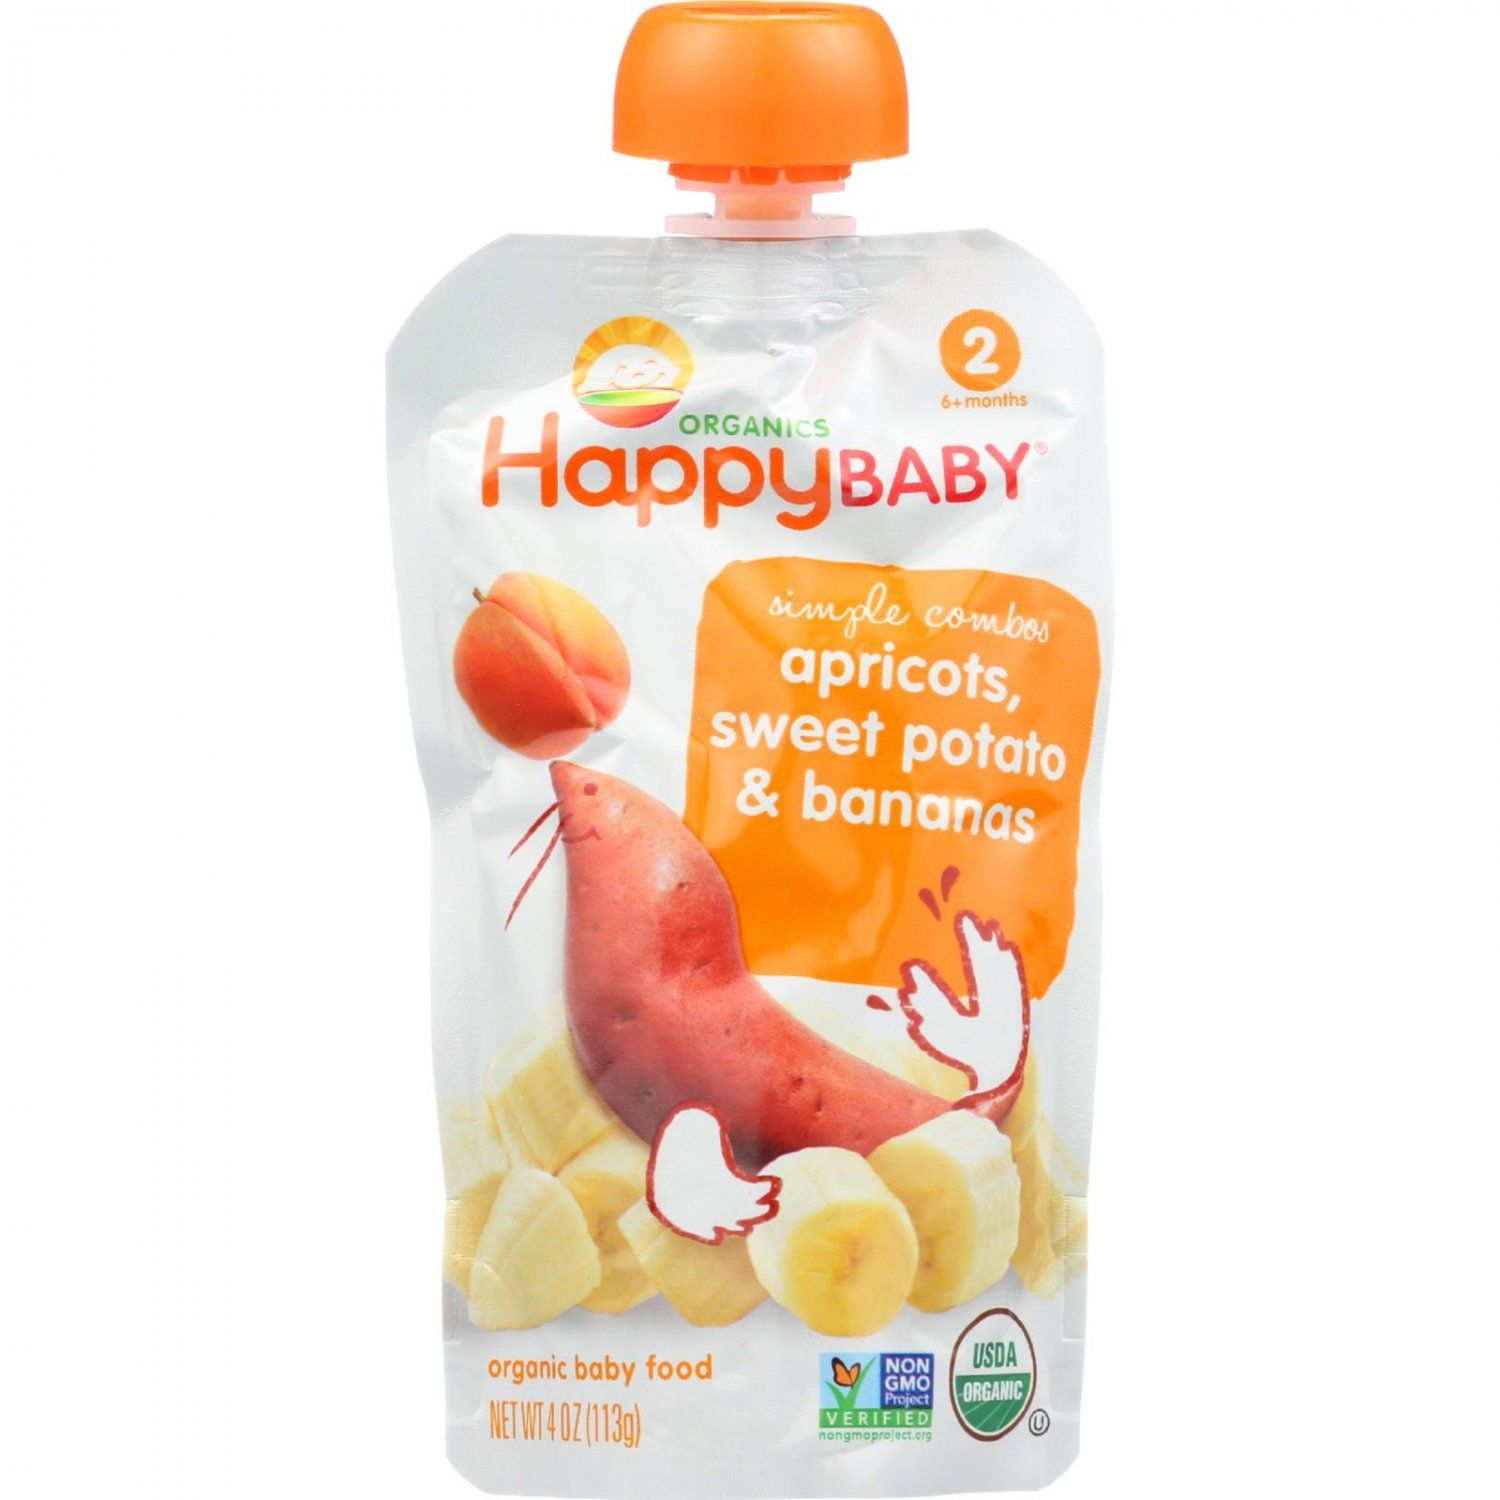 Happy Baby Baby Food - Organic - Simple Combos - Stage 2 - Apricots Sweet Potato and Bananas - 3.5 o